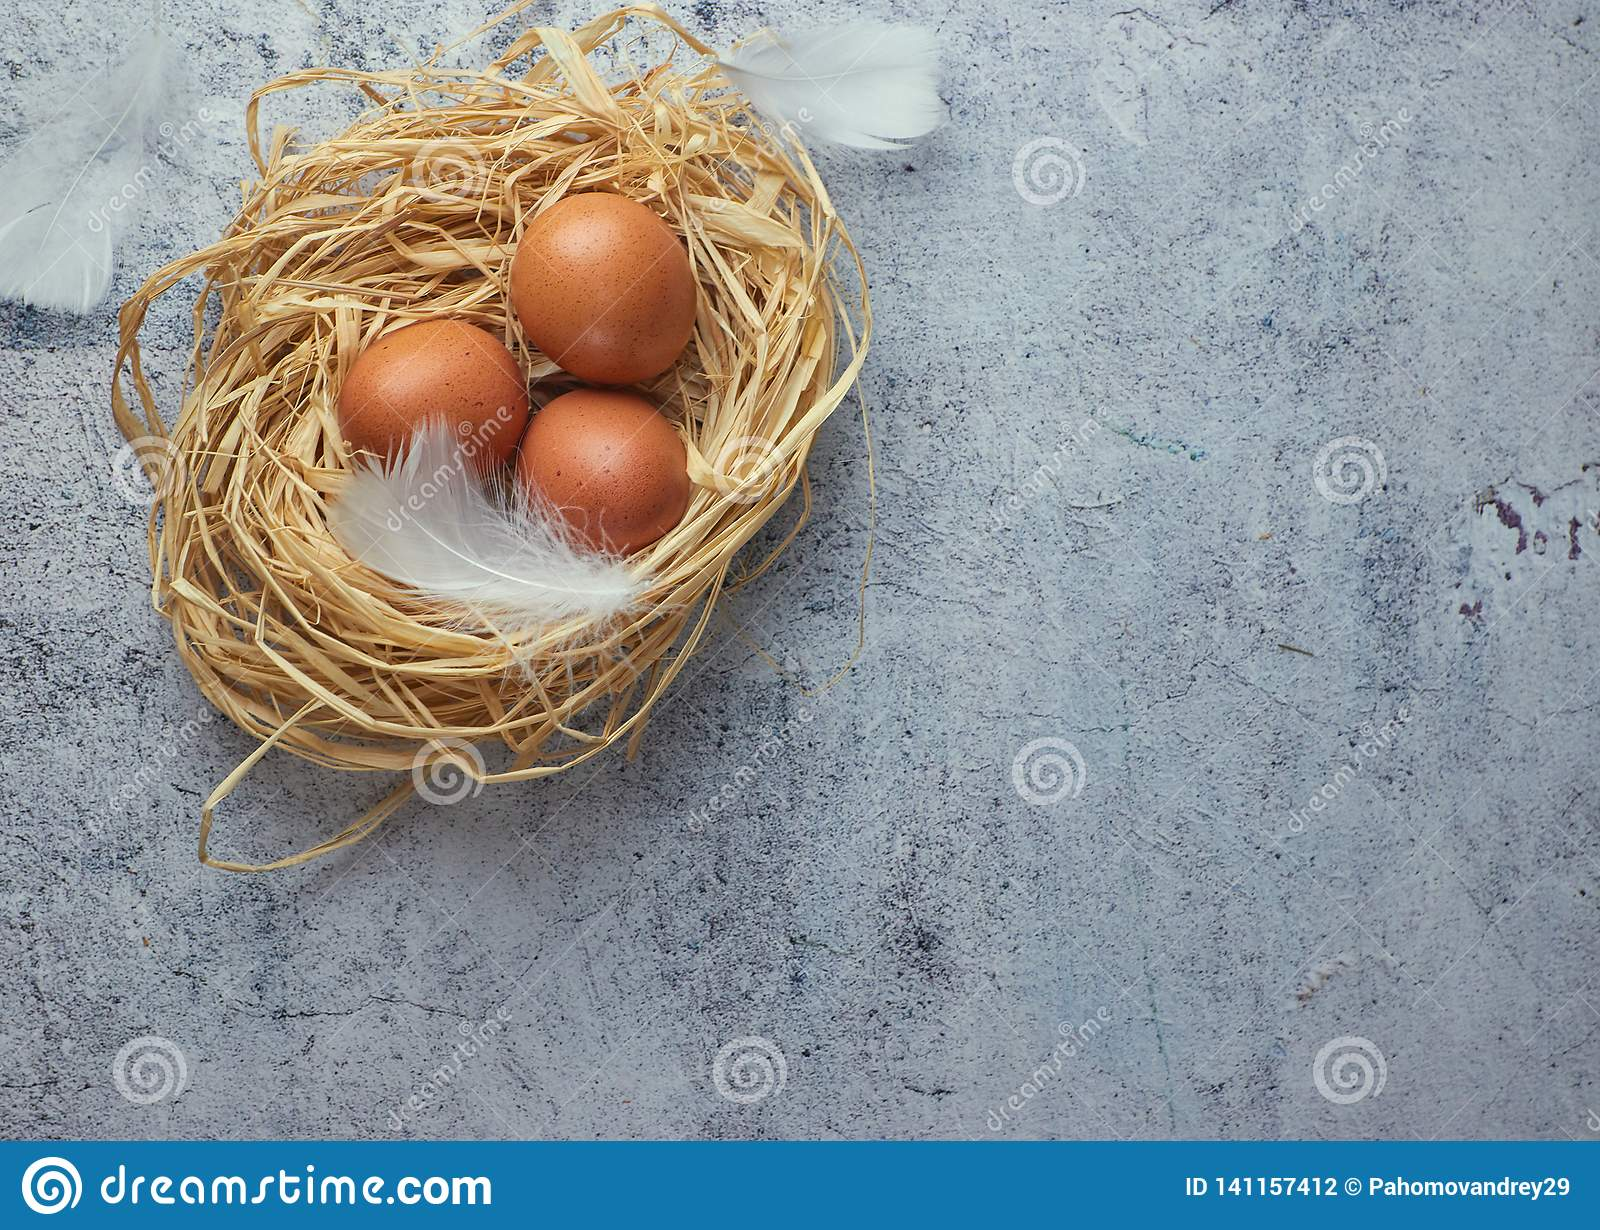 Brown chicken eggs with white feathers in hay nest on light concrete. closeup of a farm of eggs. copy space. horizontal view of